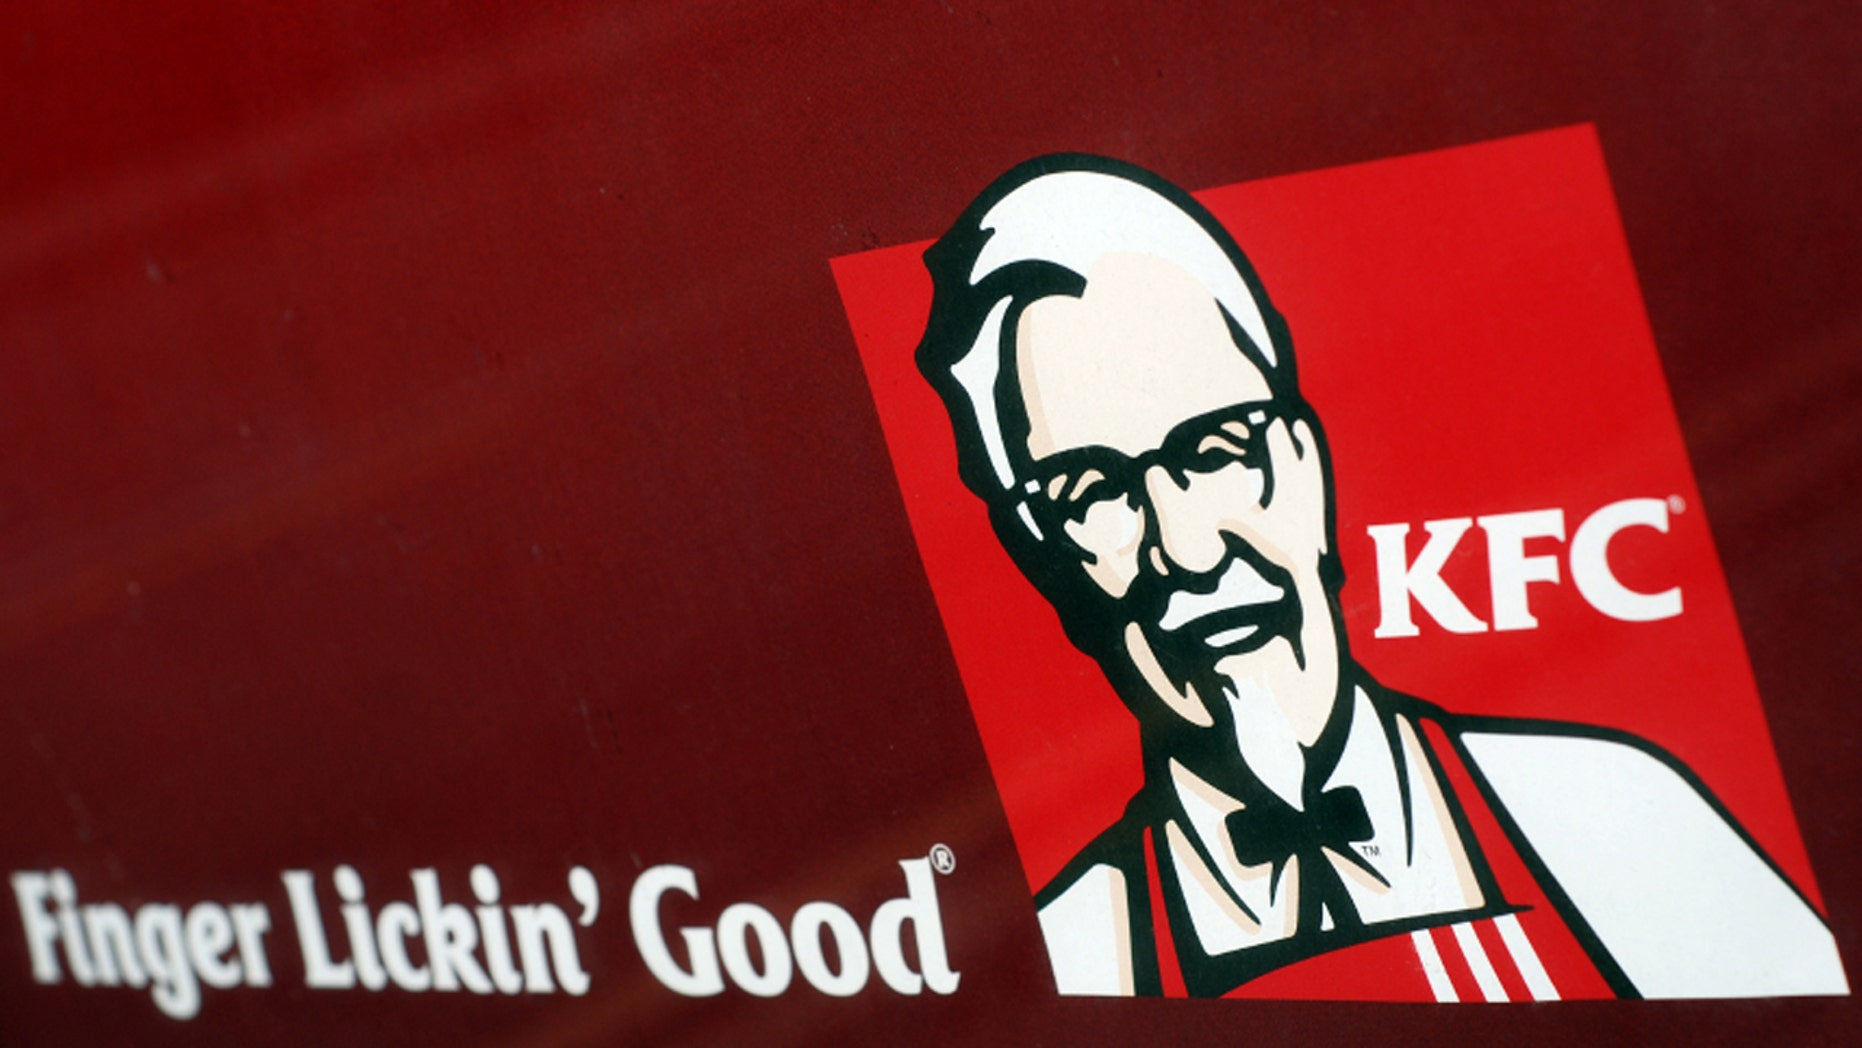 KFC Australia is under fire for a raunchy tweet.